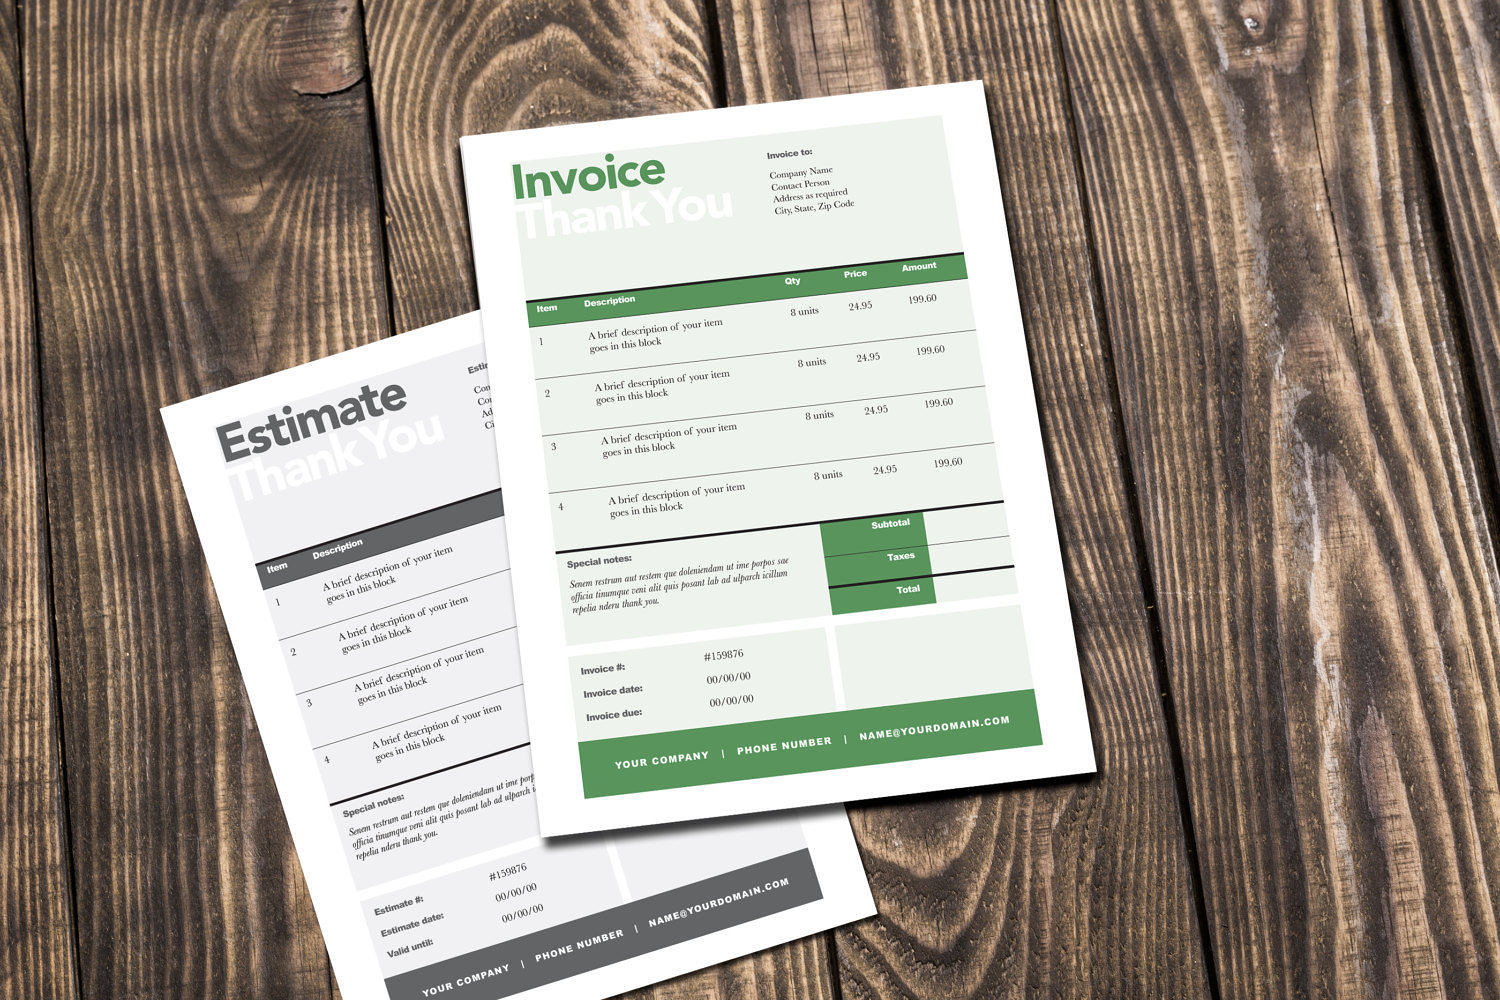 Simple Invoice and Estimate Template   Rumble Design Store Editable Invoice   Estimate Template